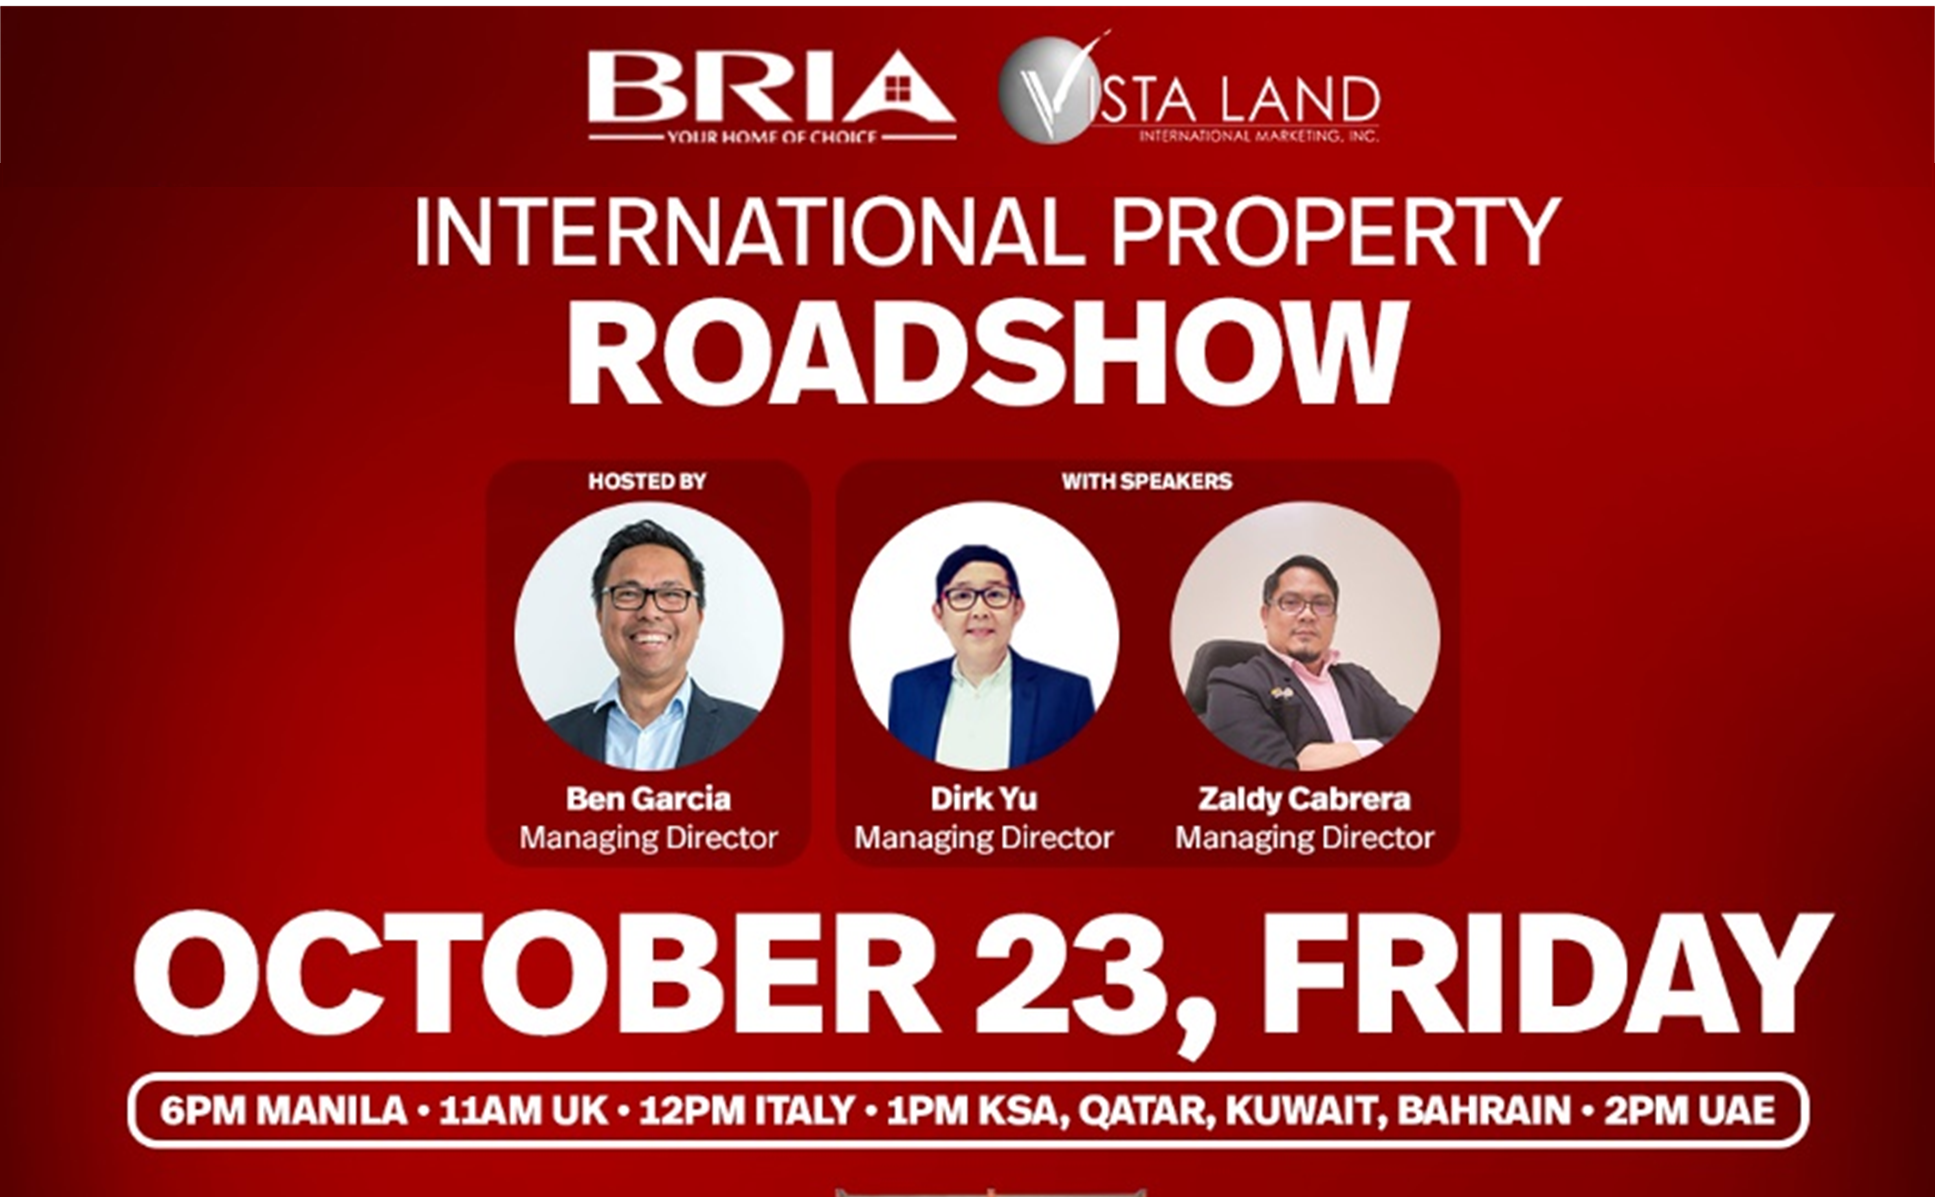 Bria International Property Roadshow, house and lot Philippines